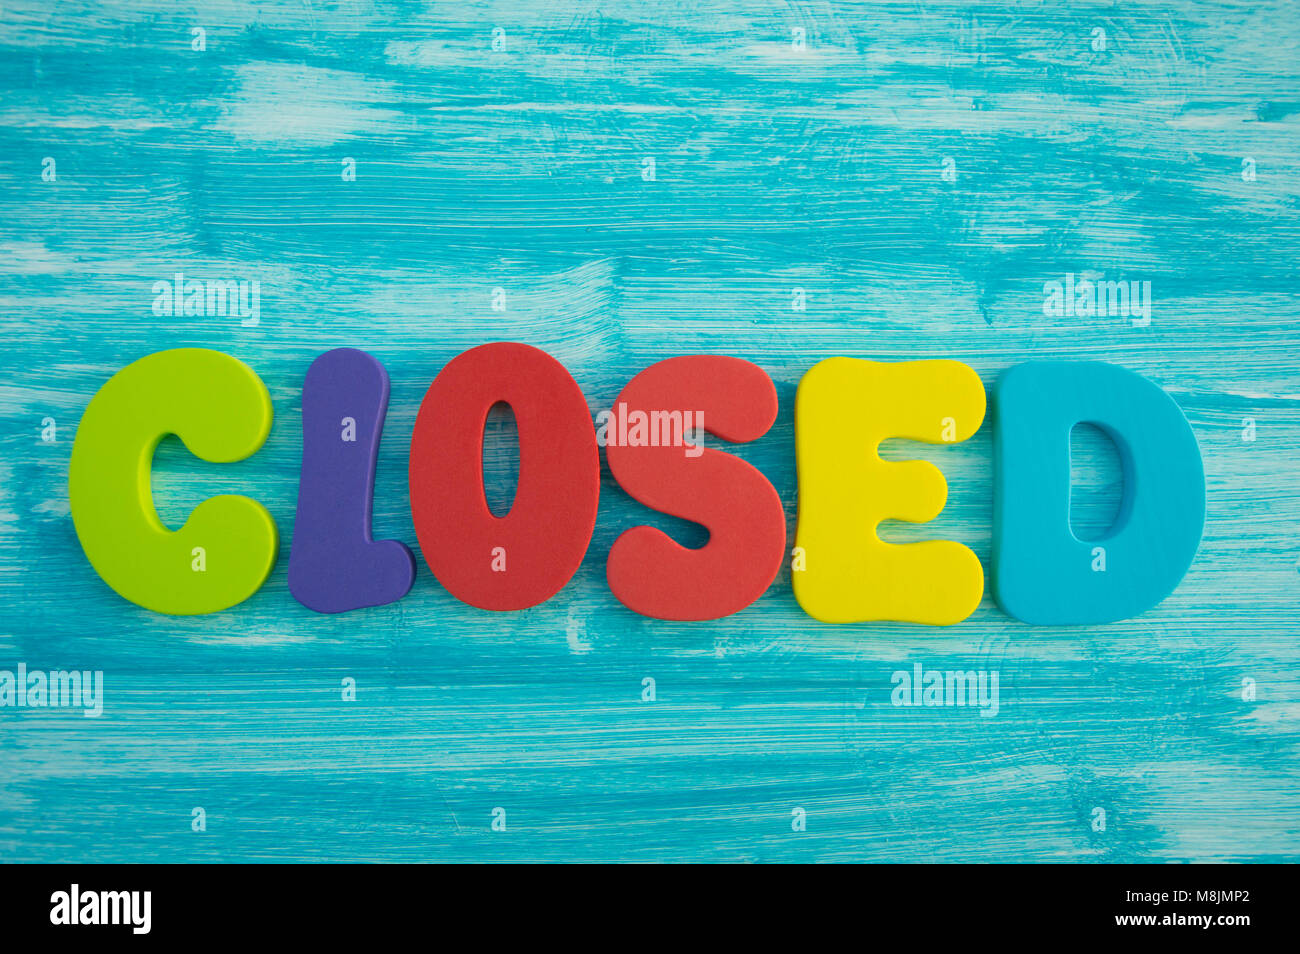 Closed in capital letters on blue colour wash wood background - Stock Image